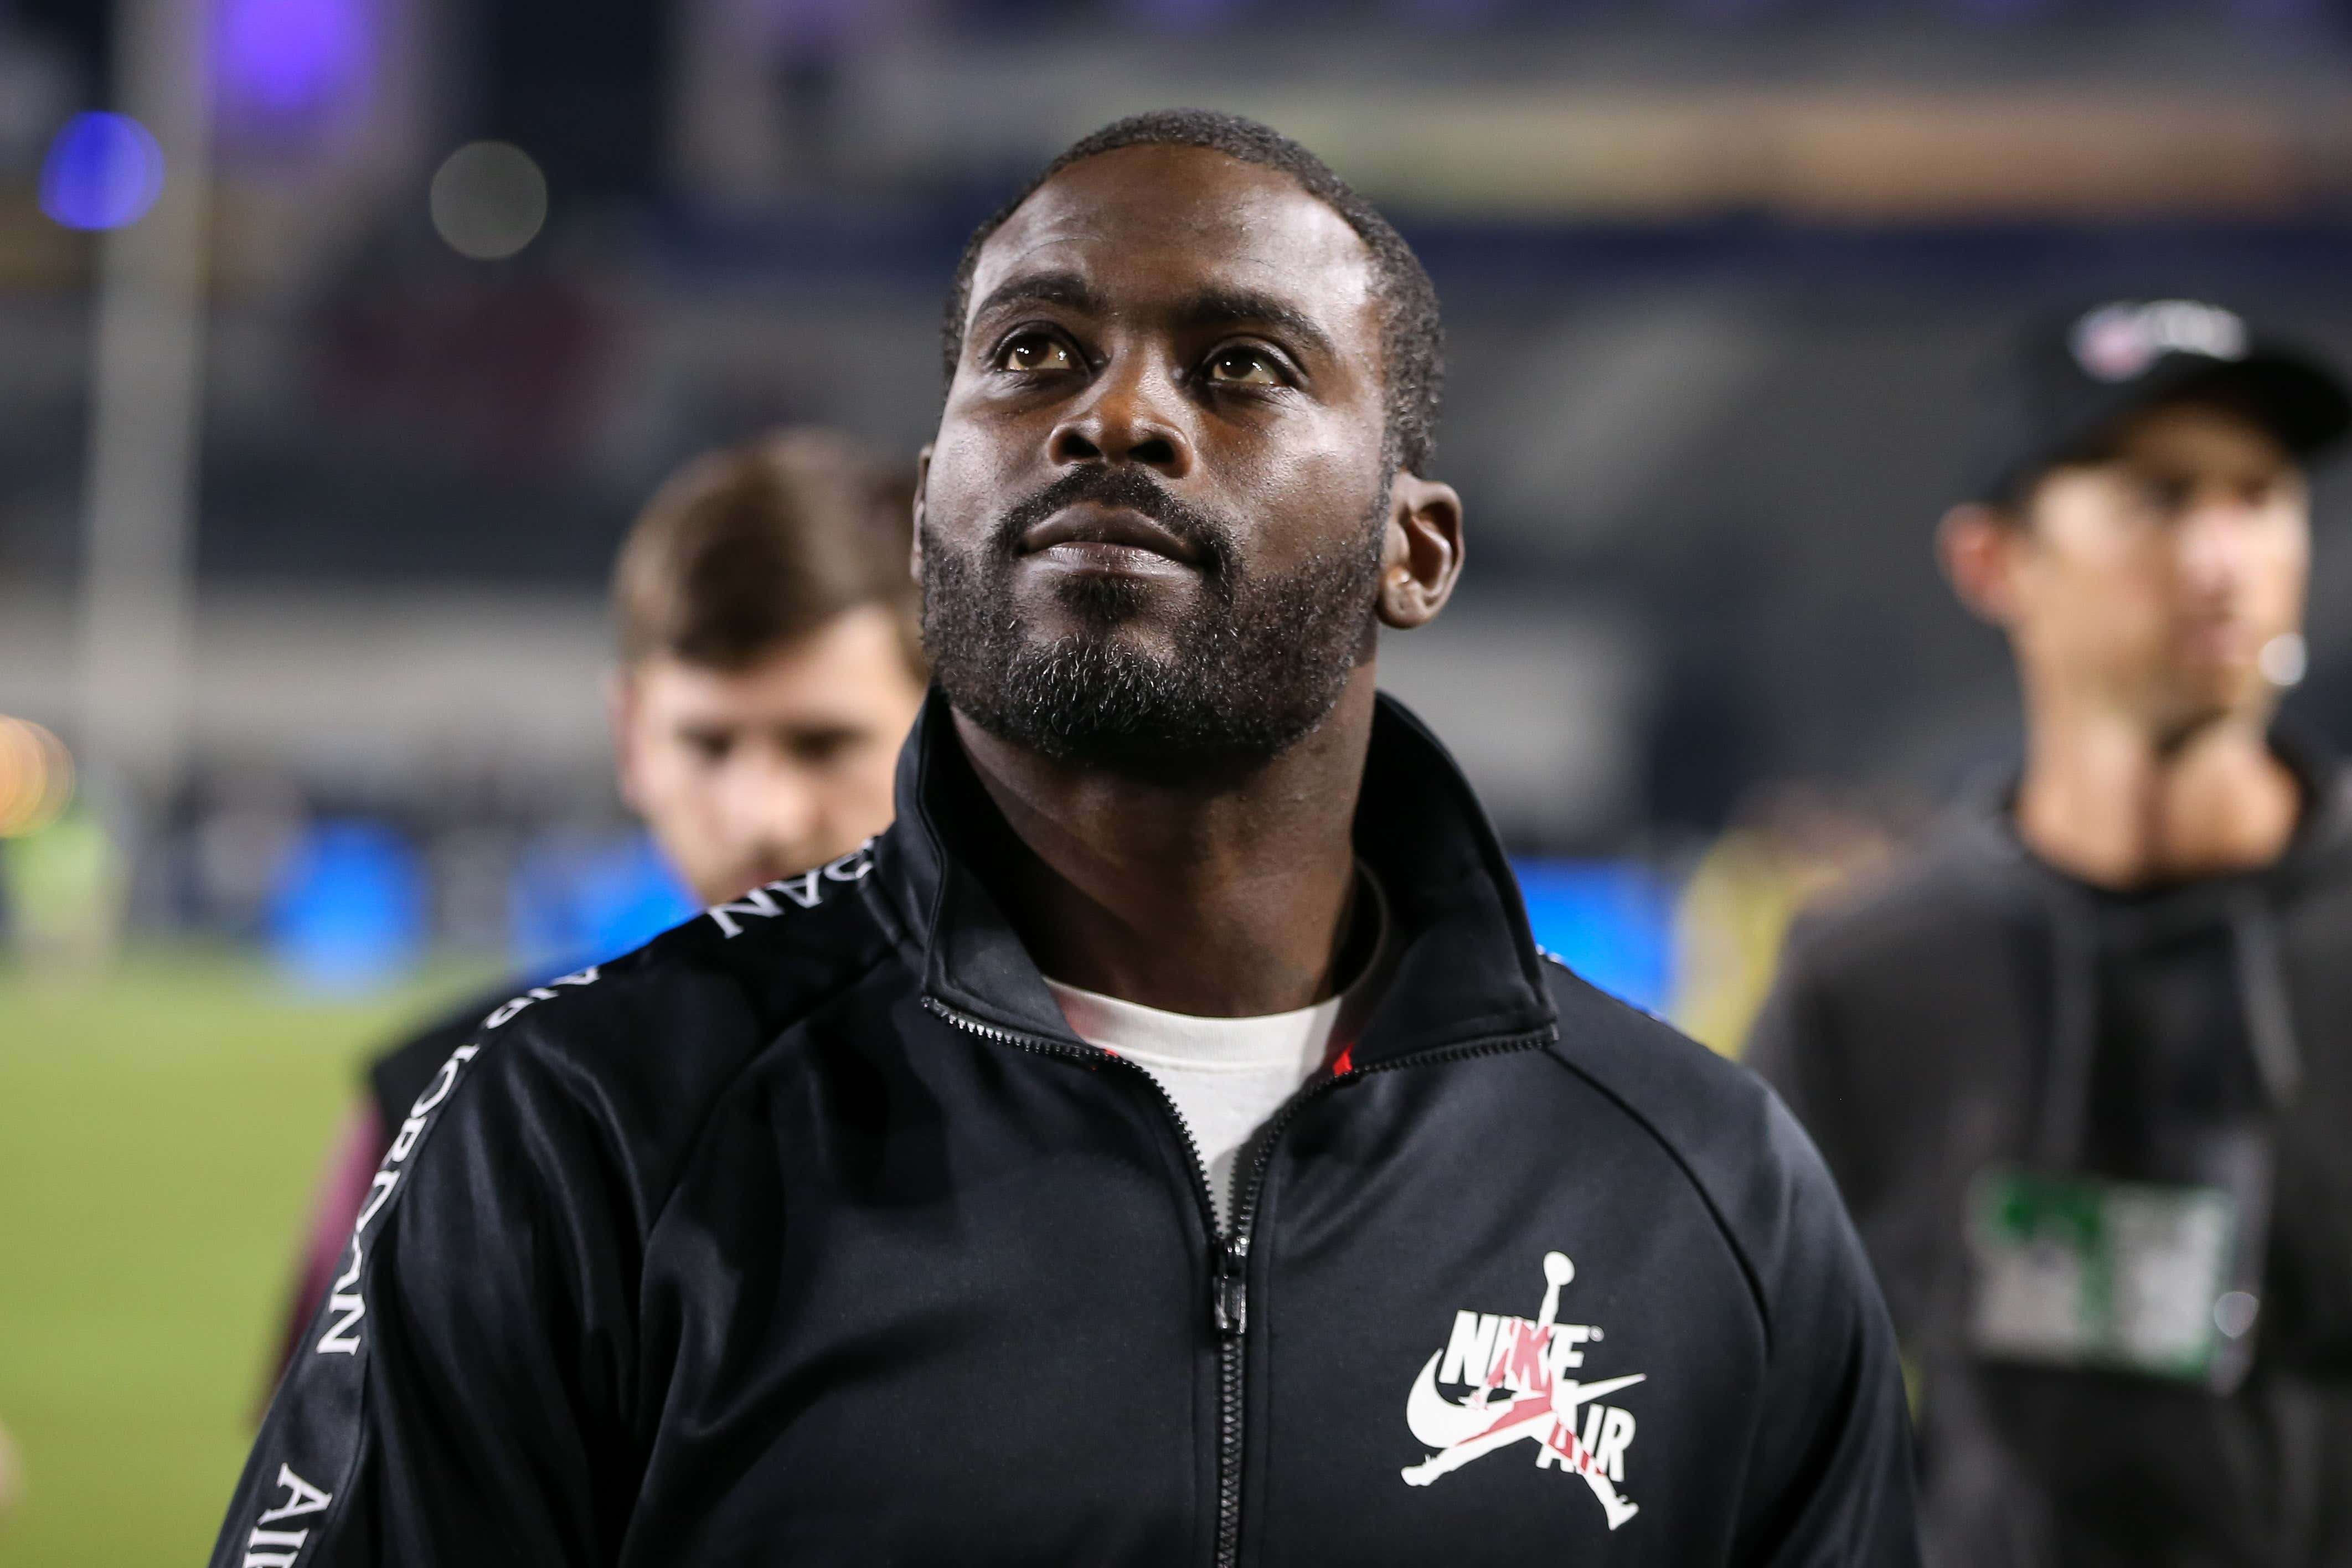 Los Angeles, CA…Michael Vick during the NFL game between Chicago Bears vs Los Angeles Rams at the Los Angeles Memorial Coliseum in Los Angeles, Ca on November, 2019. Jevone Moore